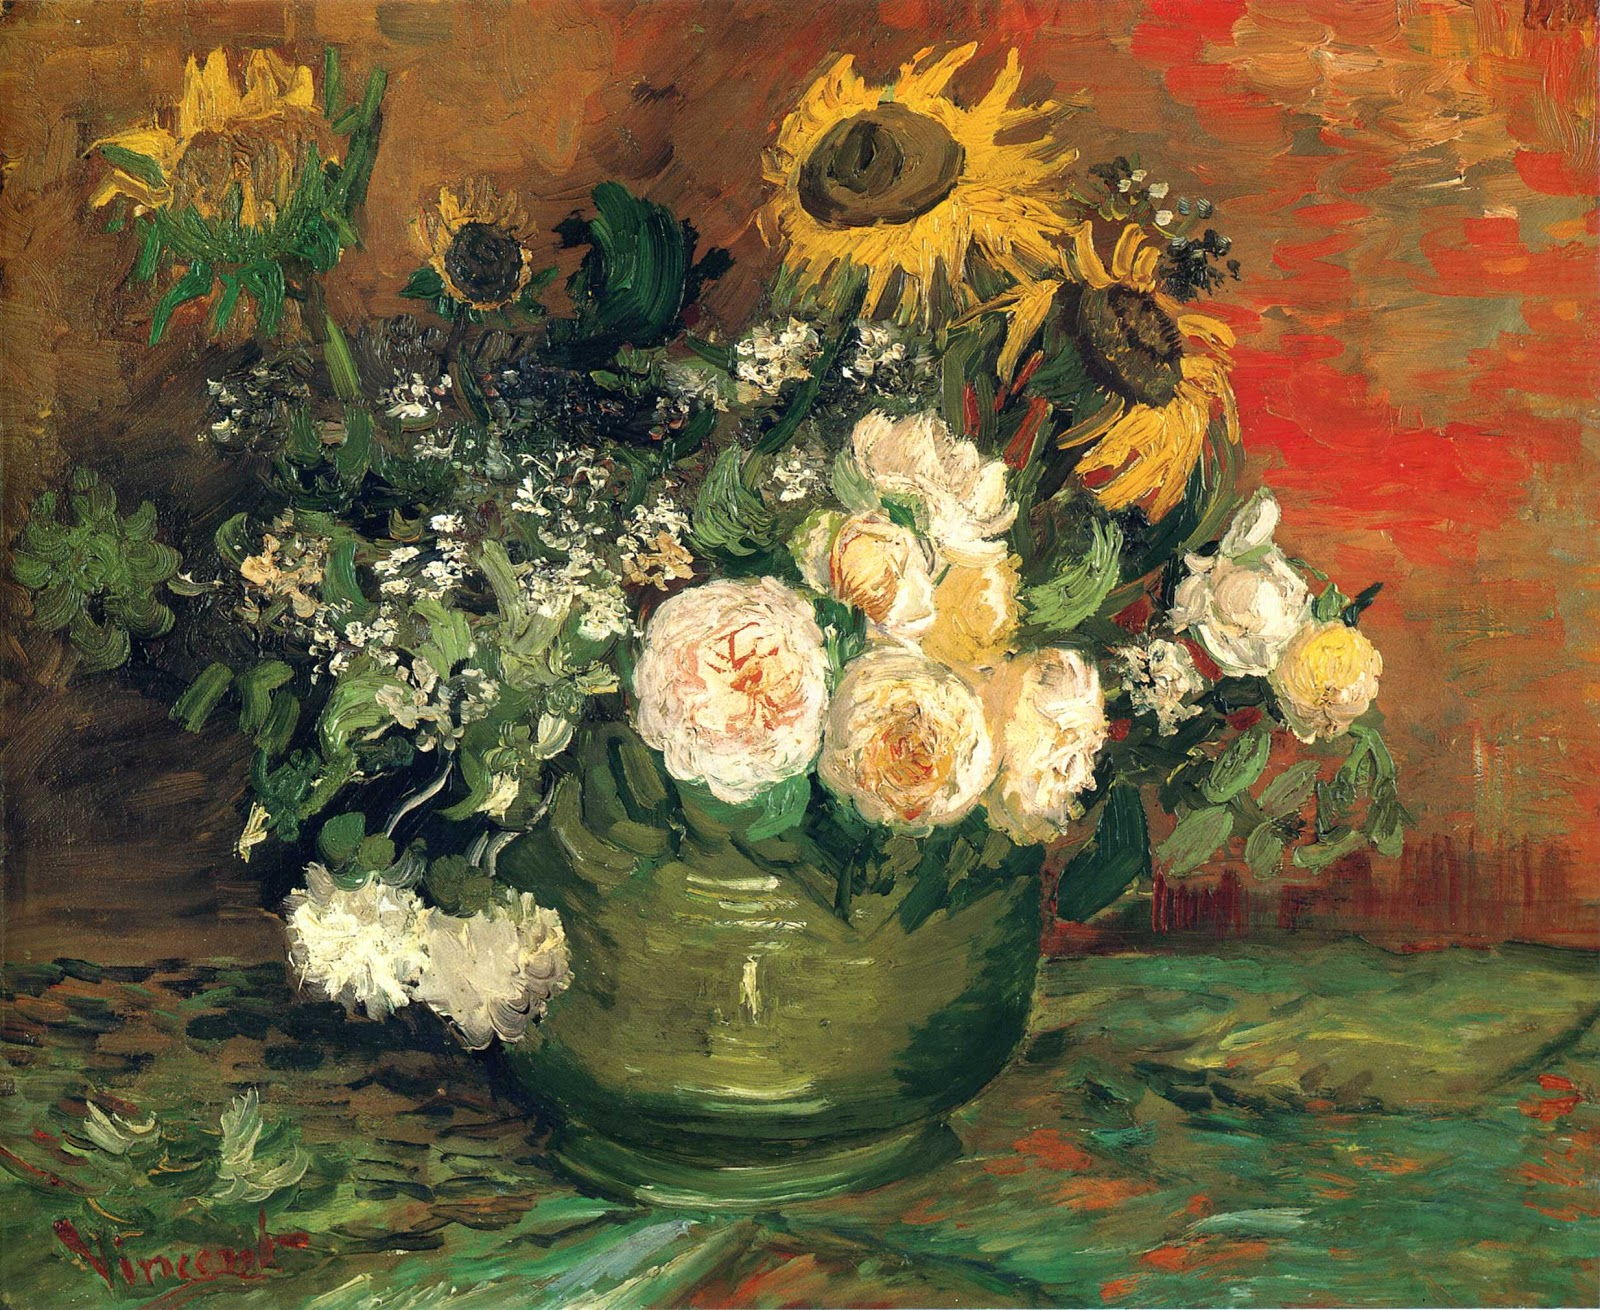 vincent van gogh life and paintings Vincent van gogh: vincent van gogh  vincent van gogh, in full vincent willem van gogh, (born march 30, 1853, zundert,  jean-françois millet and camille corot, whose influence was to last throughout his life van gogh disliked art dealing moreover, his approach to life darkened when his love was rejected by a london girl in 1874 his.